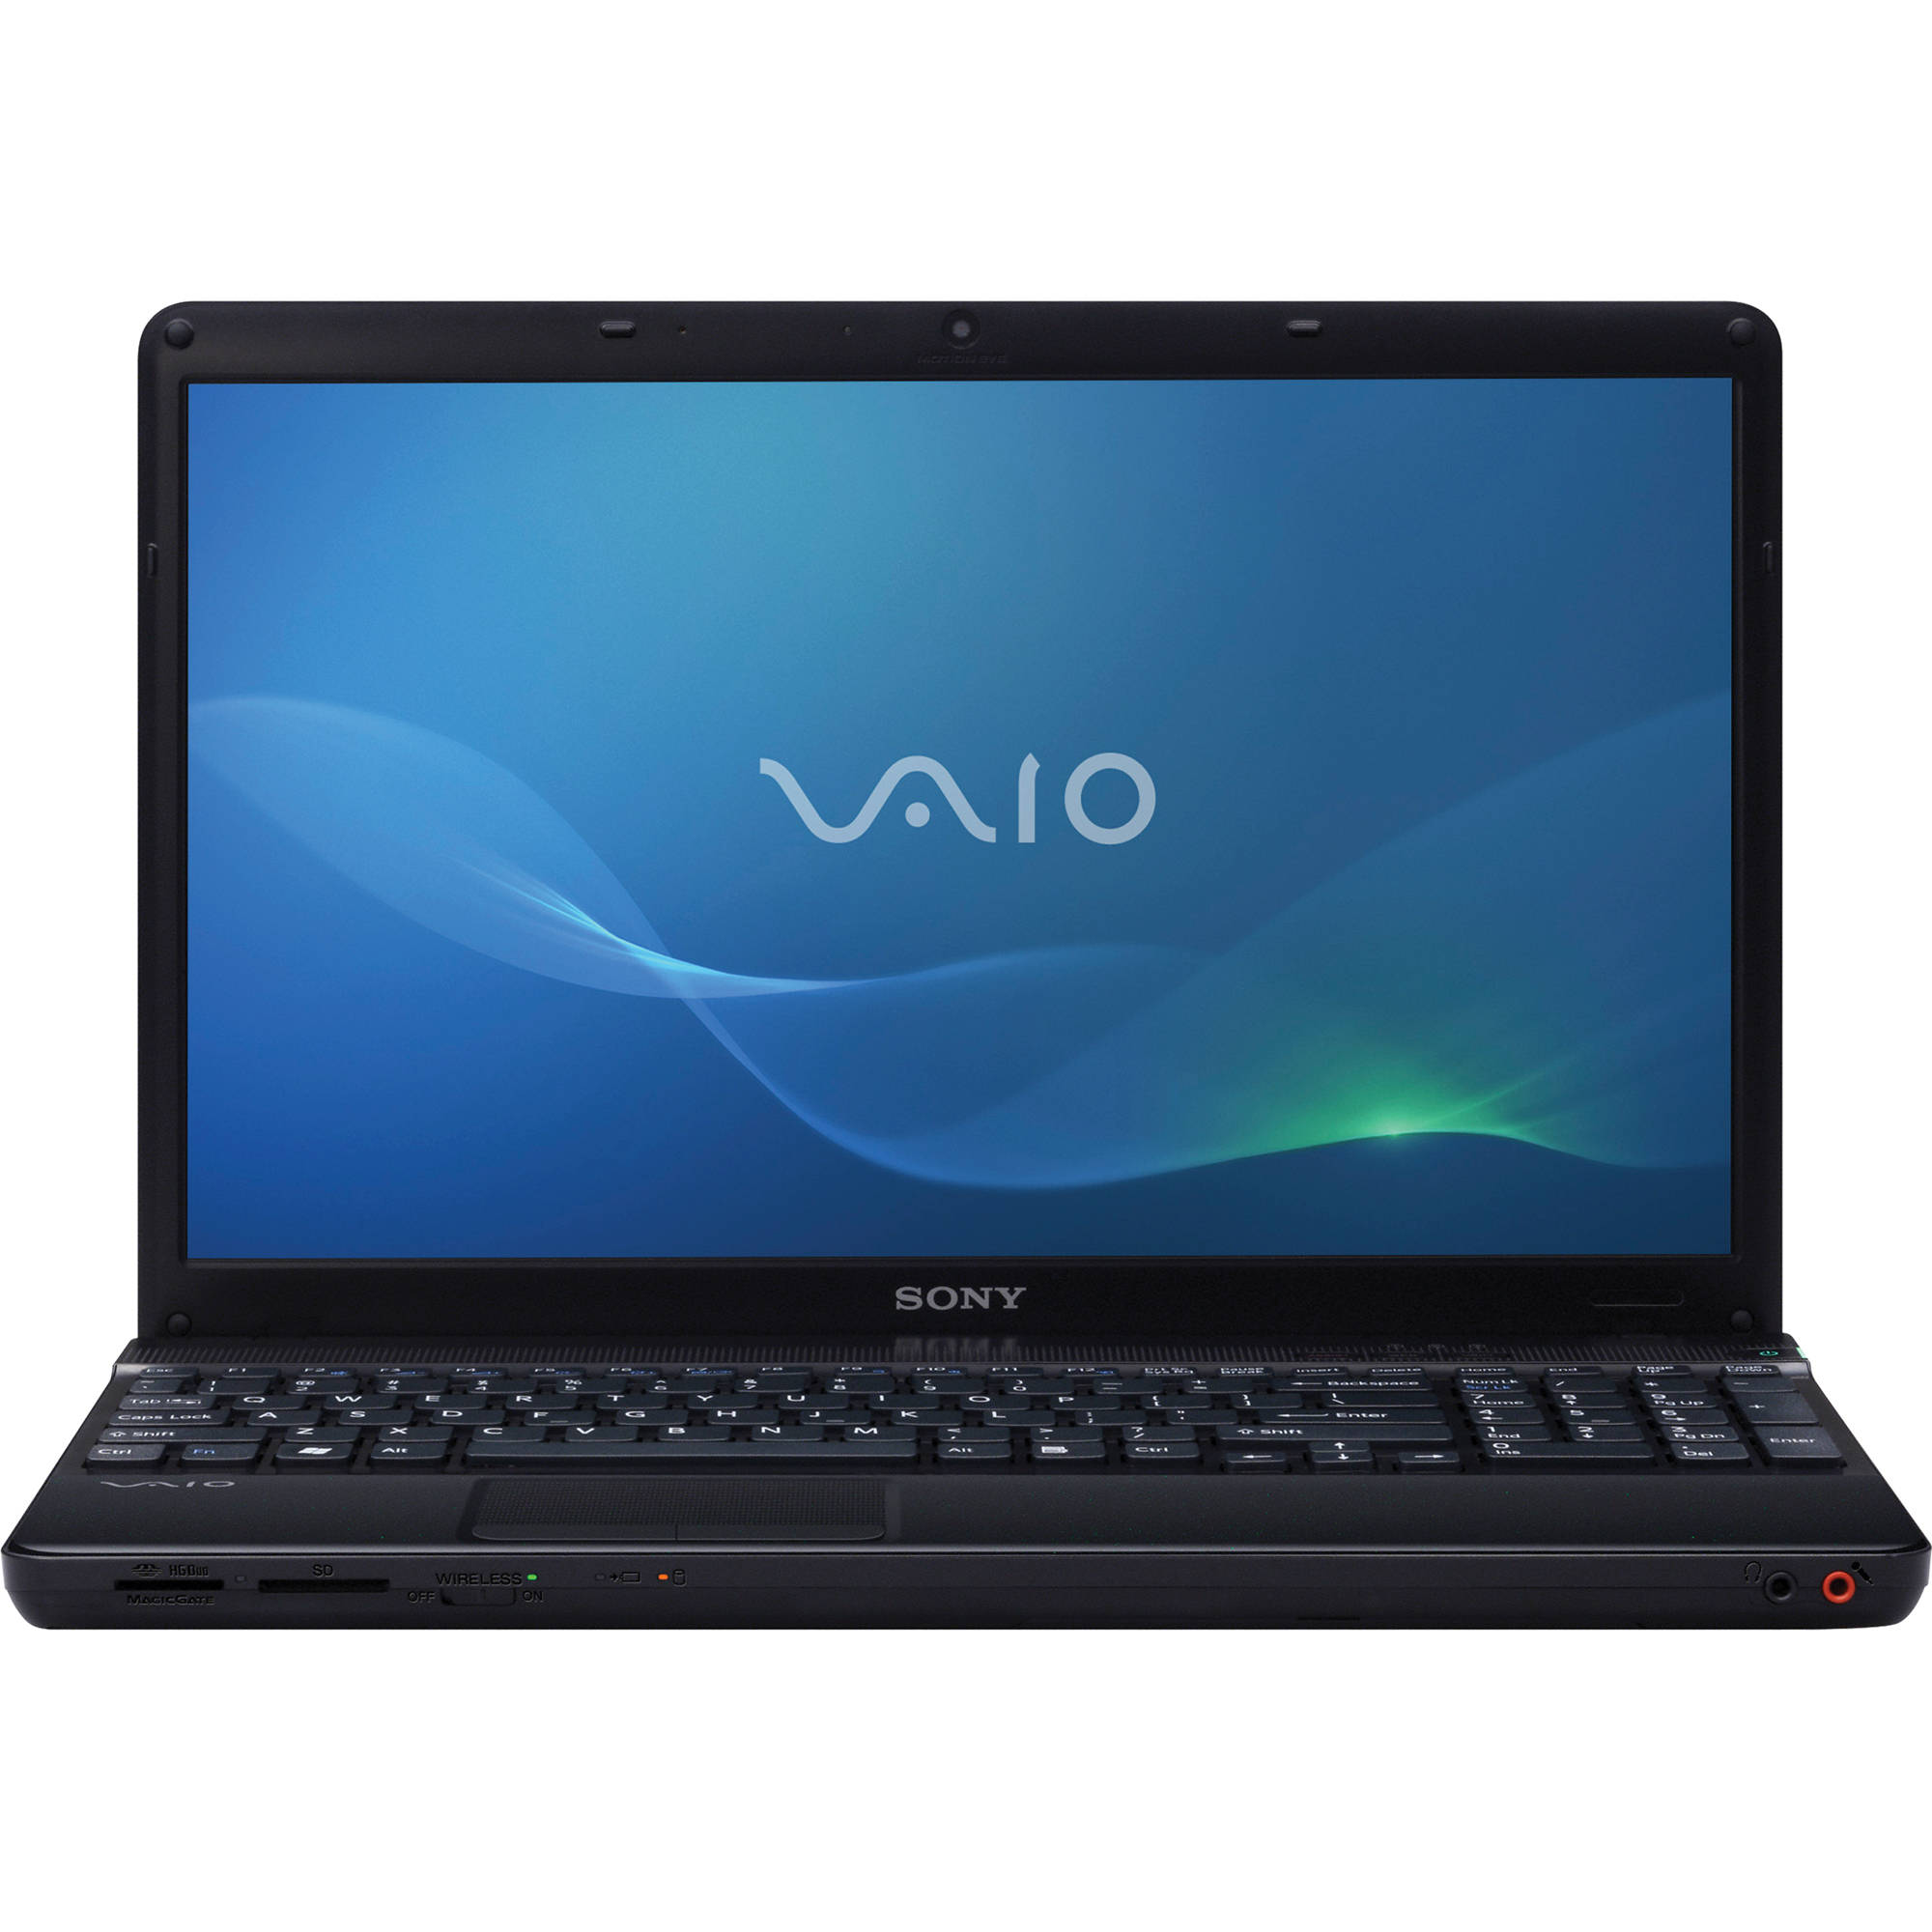 Sony Vaio VPCEG26FX/L Smart Network Mac